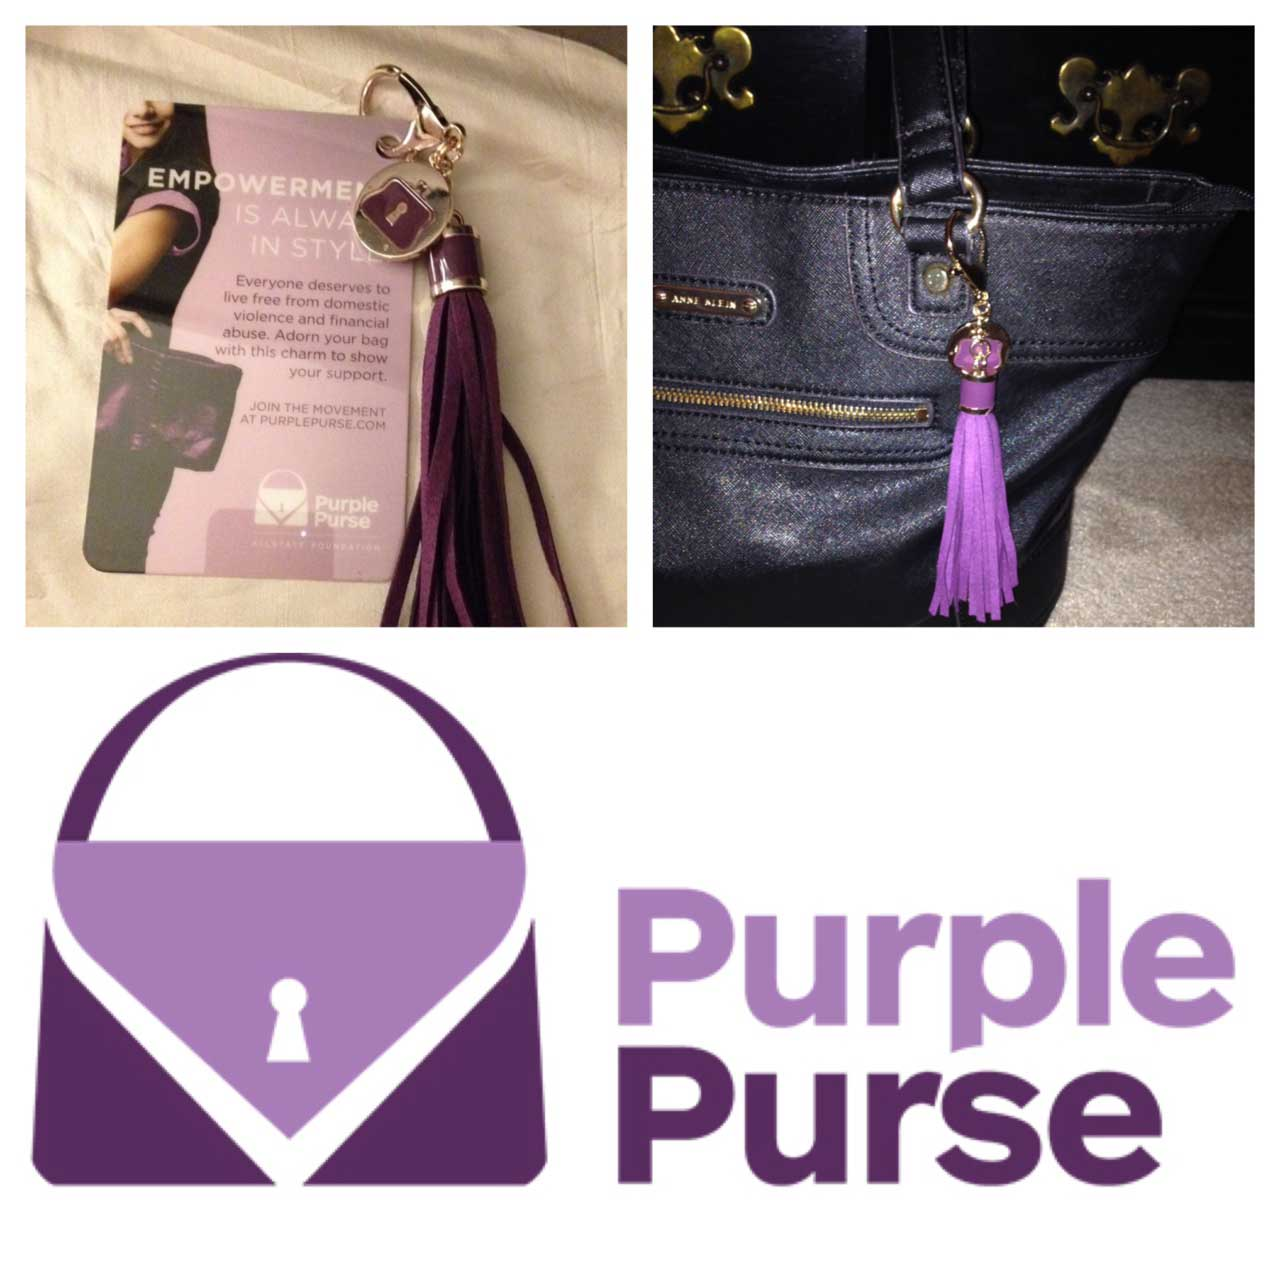 The Allstate Foundation provided 80,000 purse tassels to attach to your favorite purse as a continual sign of support. Each tassel is attached to a removable card featuring one of five inspiring survivor stories.